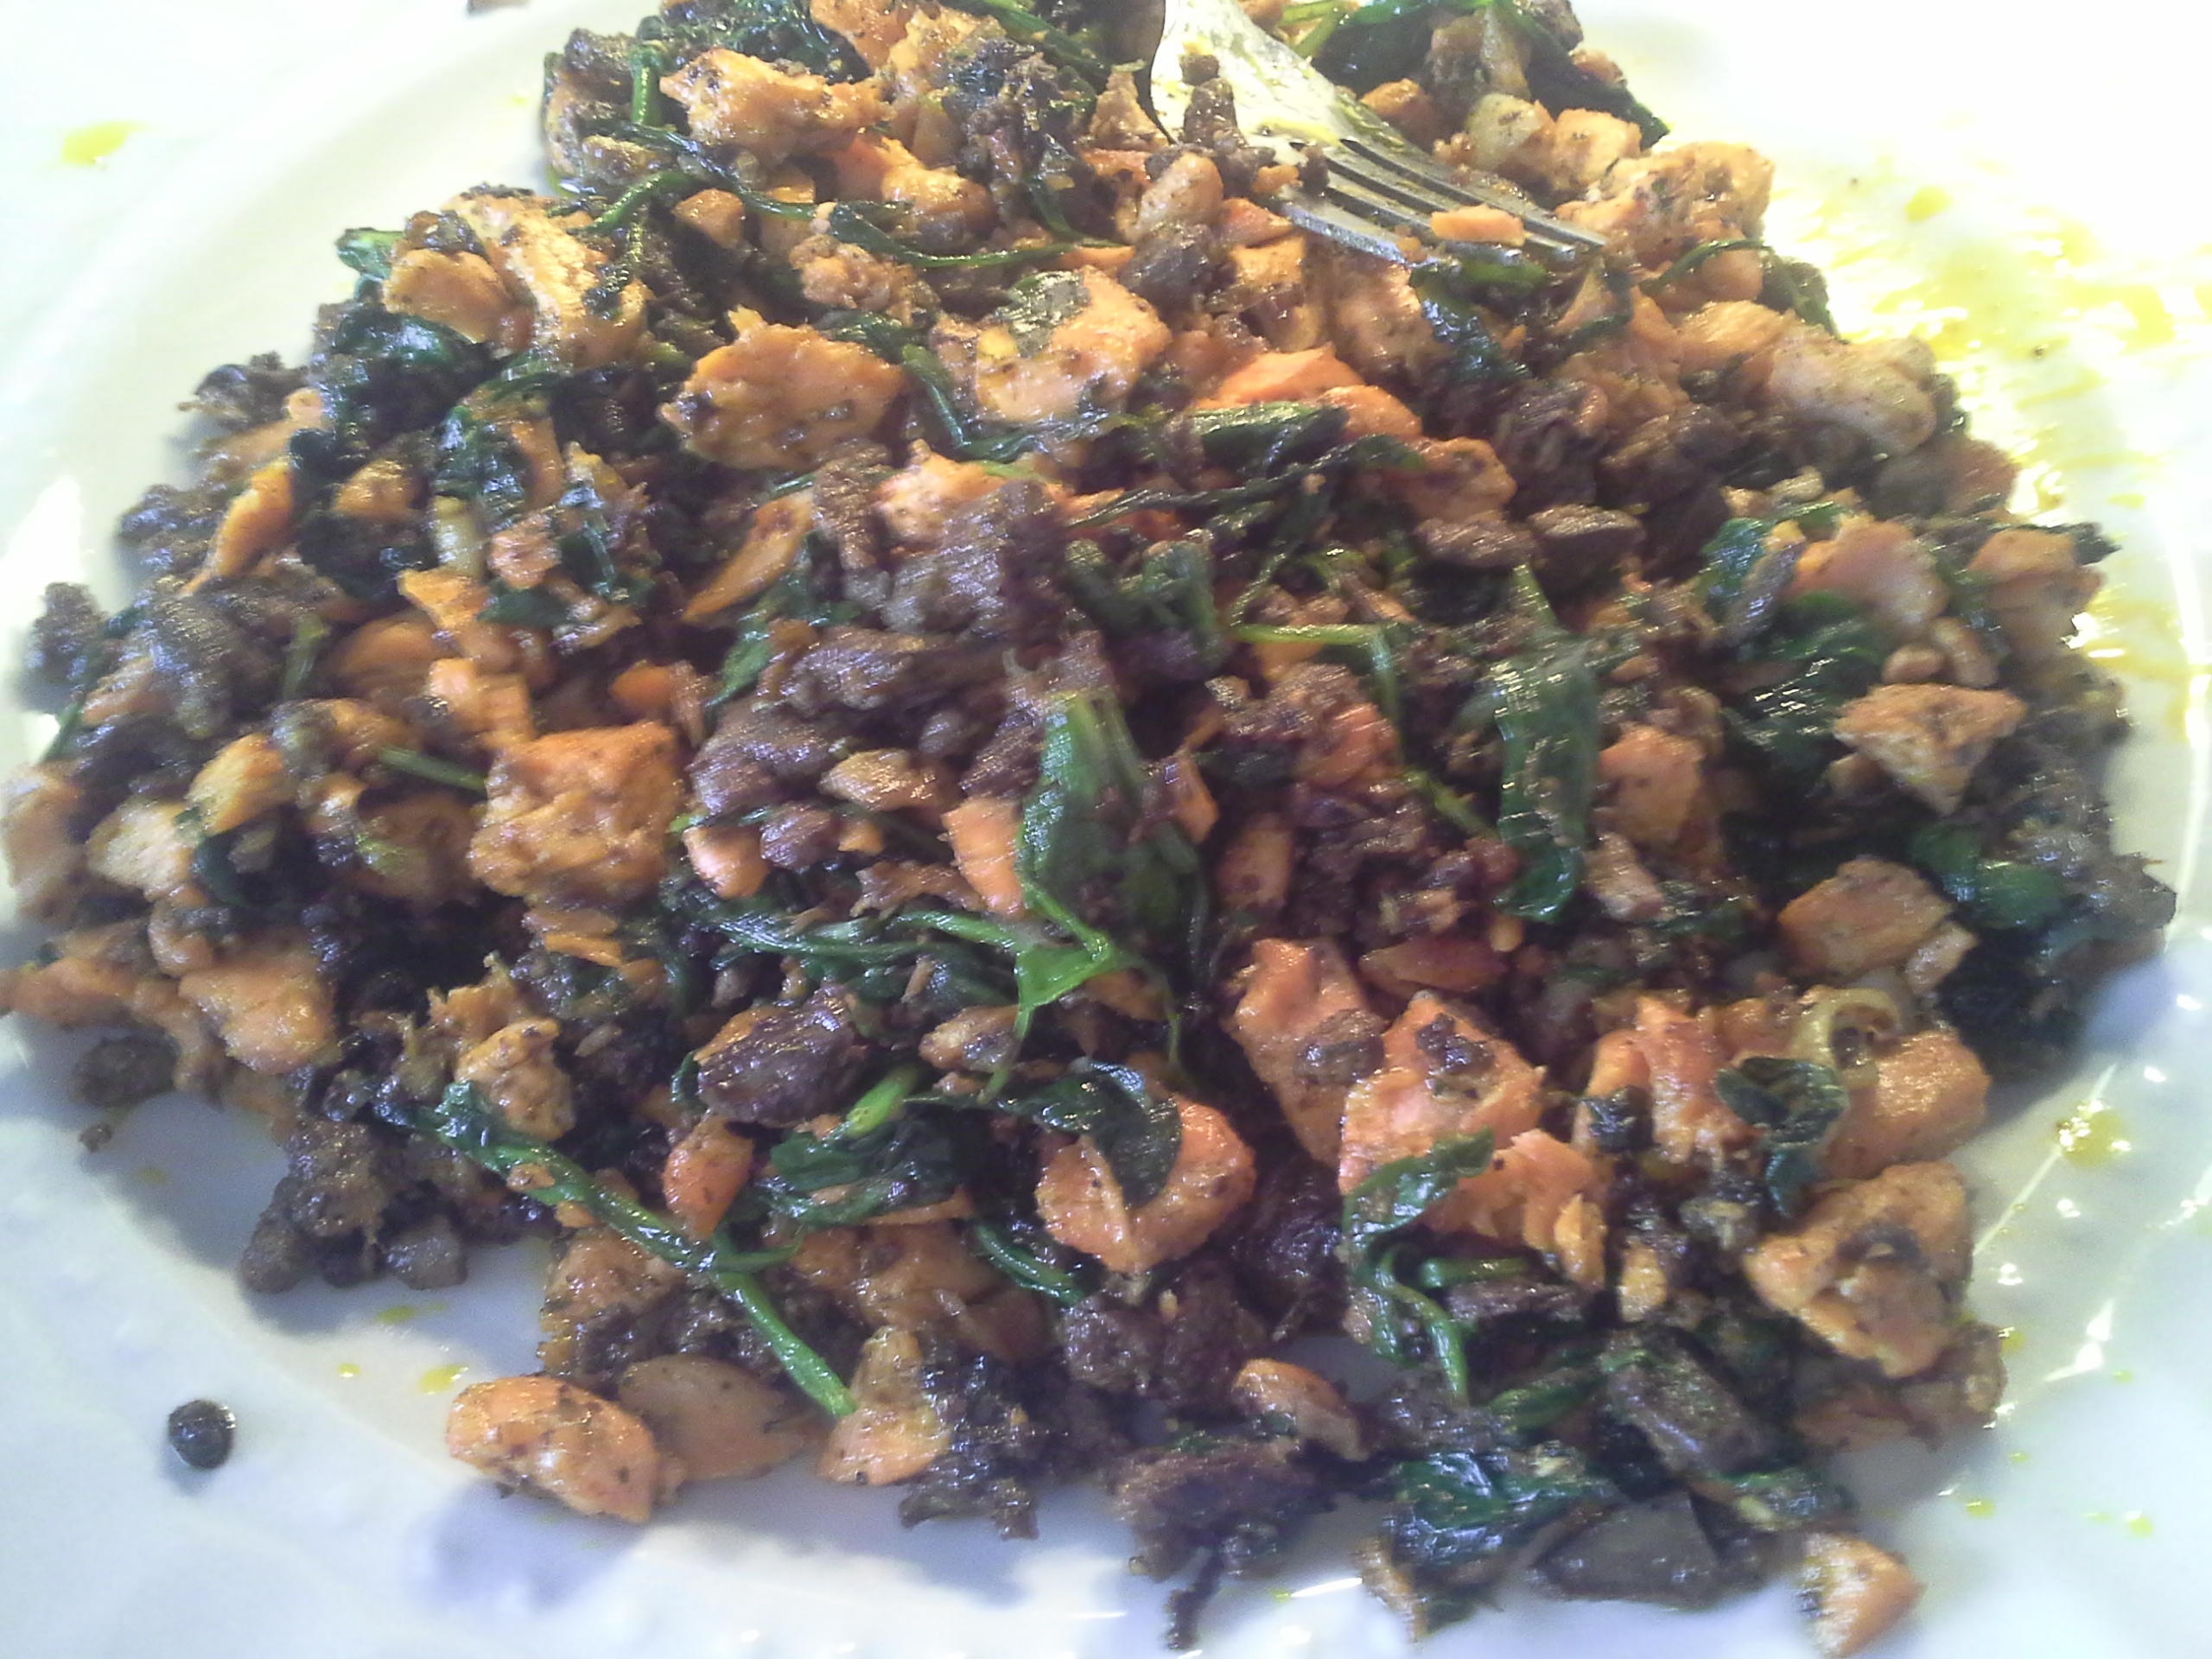 Breakfast: 1:05 p.m. | 8 oz. salmon, 2 chicken livers, greens mix, 2 Tbsp. red palm oil, herbs & spices